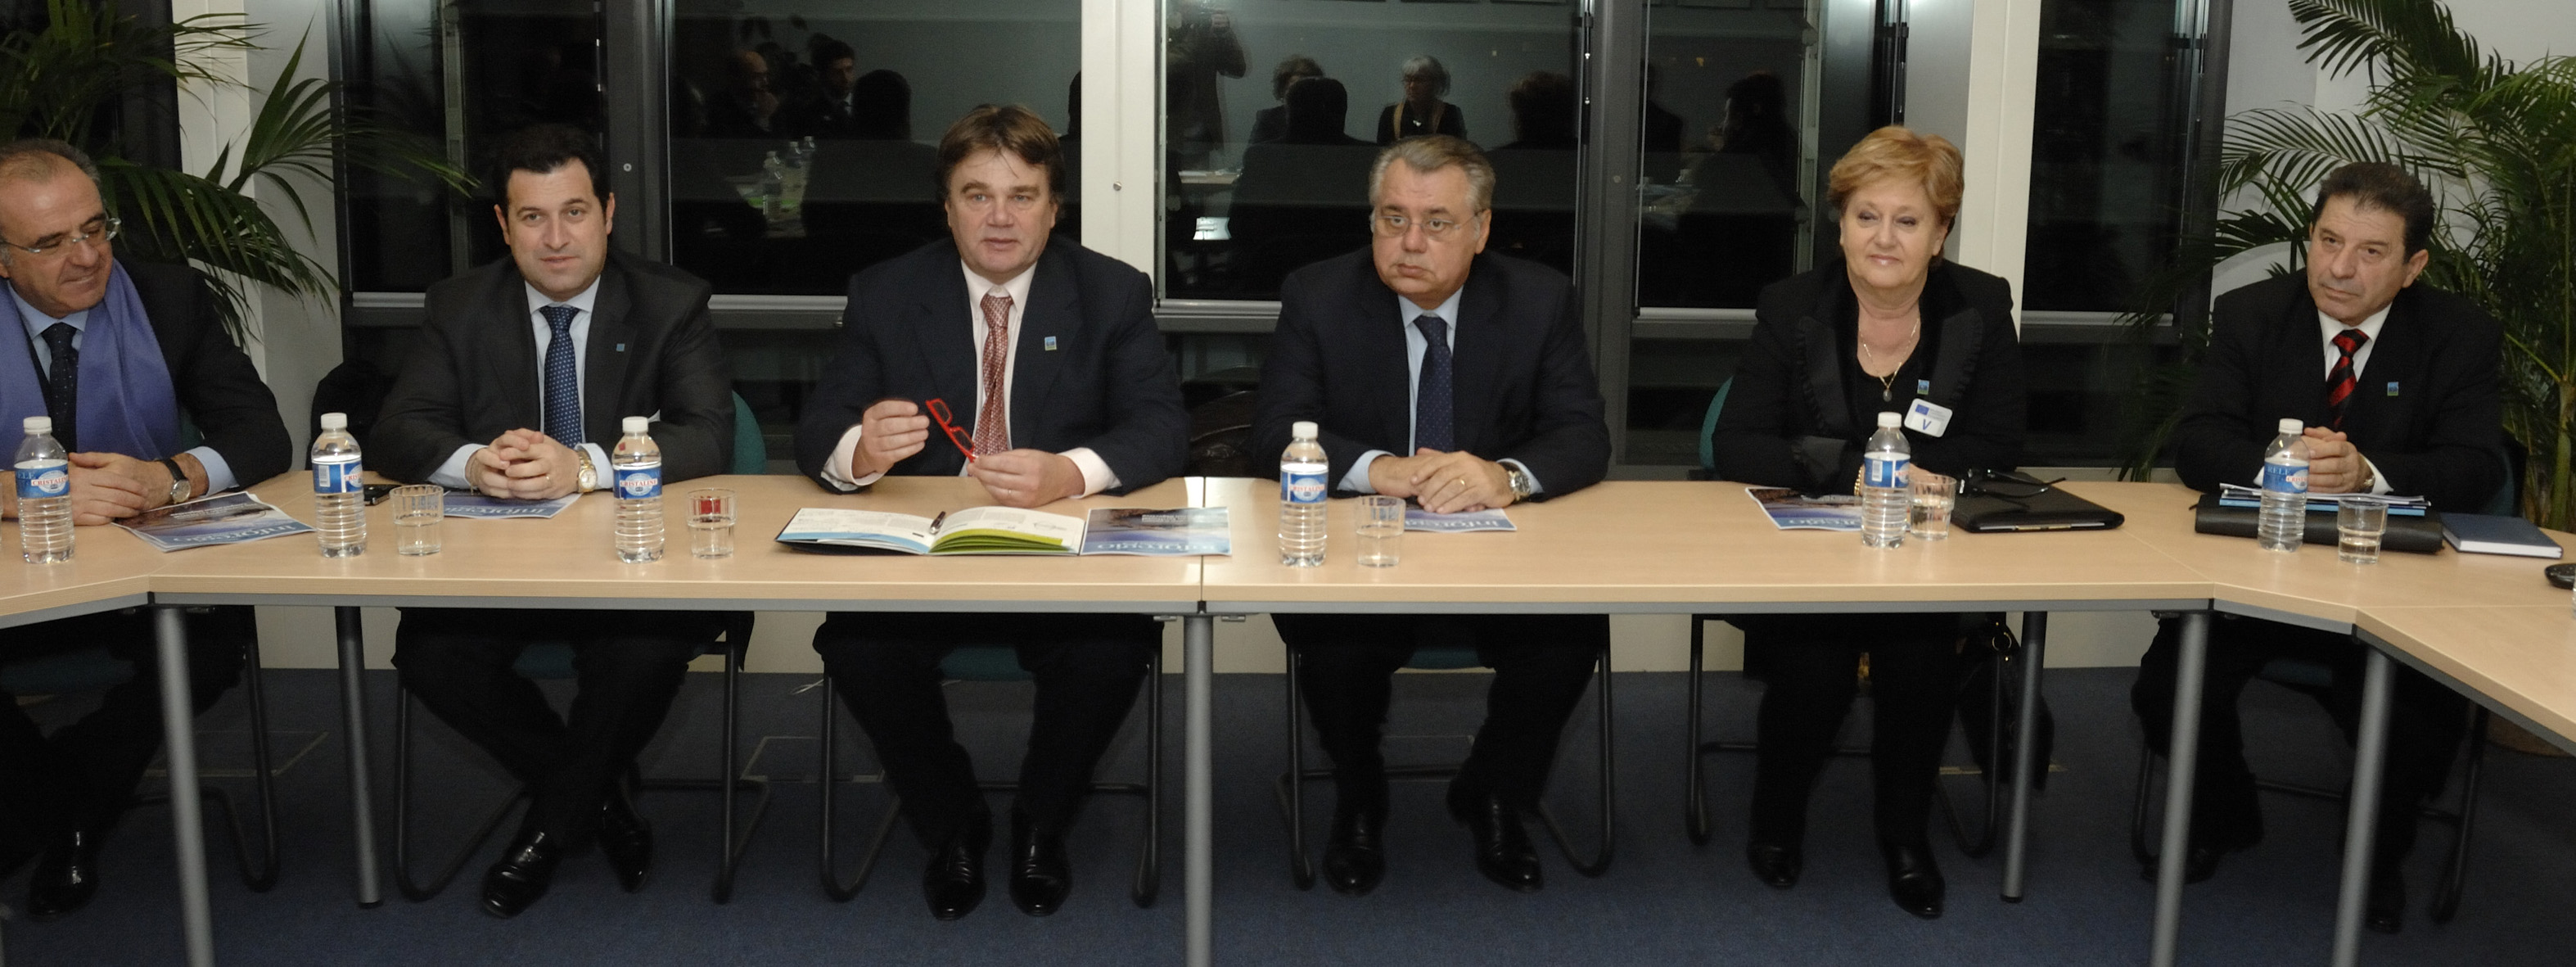 Visit by Ivan Jakovčić, President of the Region of Istria and of Adriatic Euroregion, to the EC